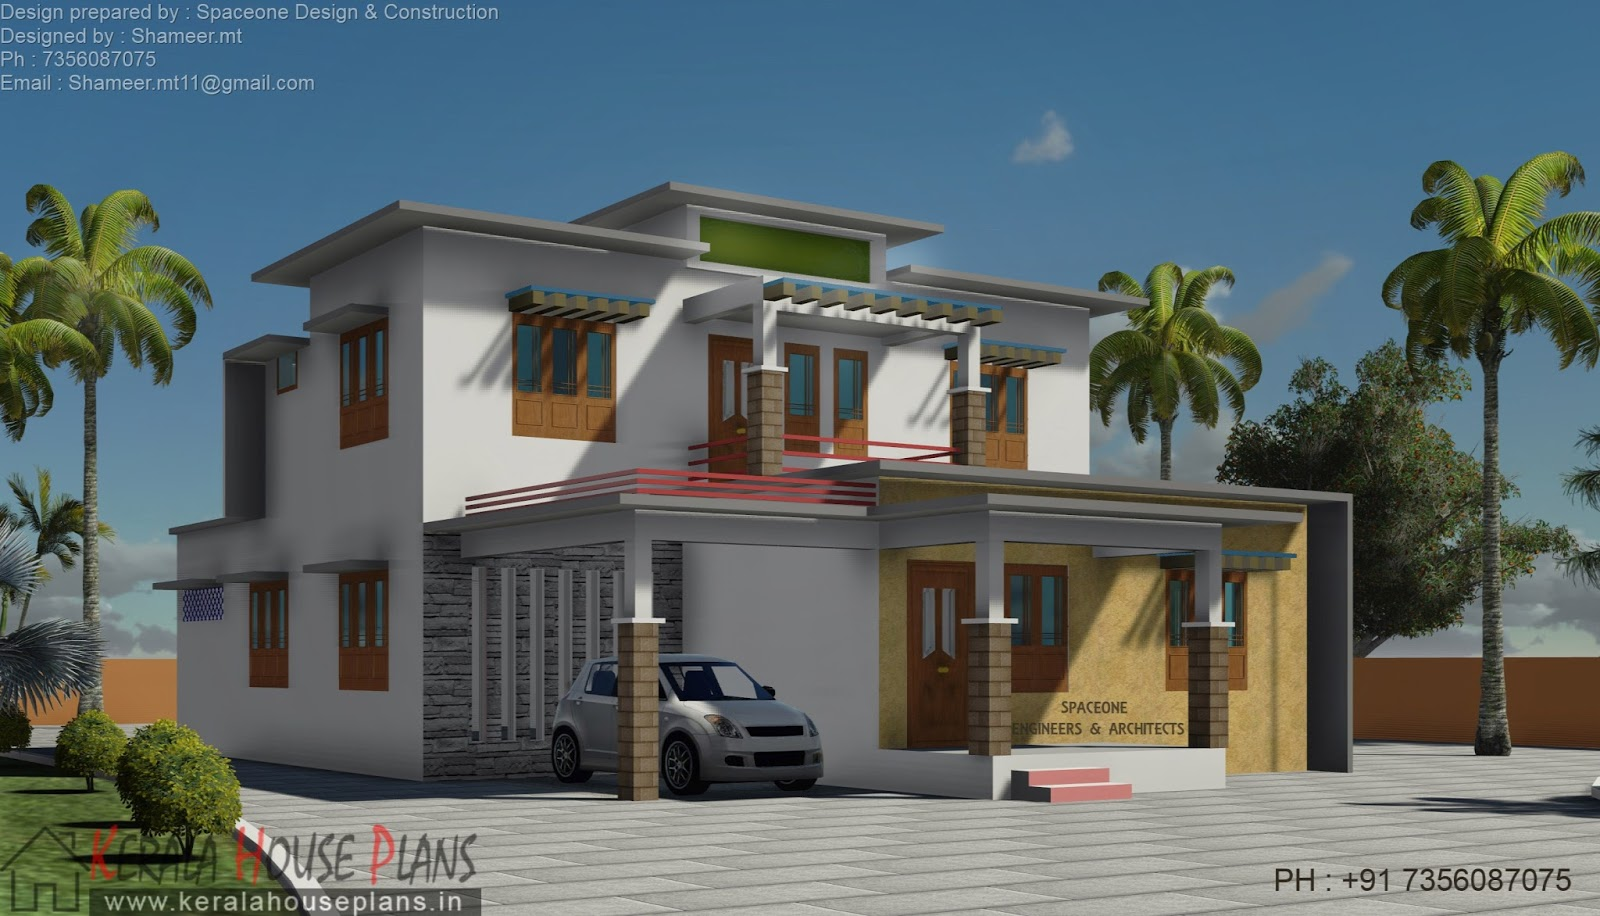 2170 sqft modern flat roof house with pergola kerala for Kerala home design flat roof elevation